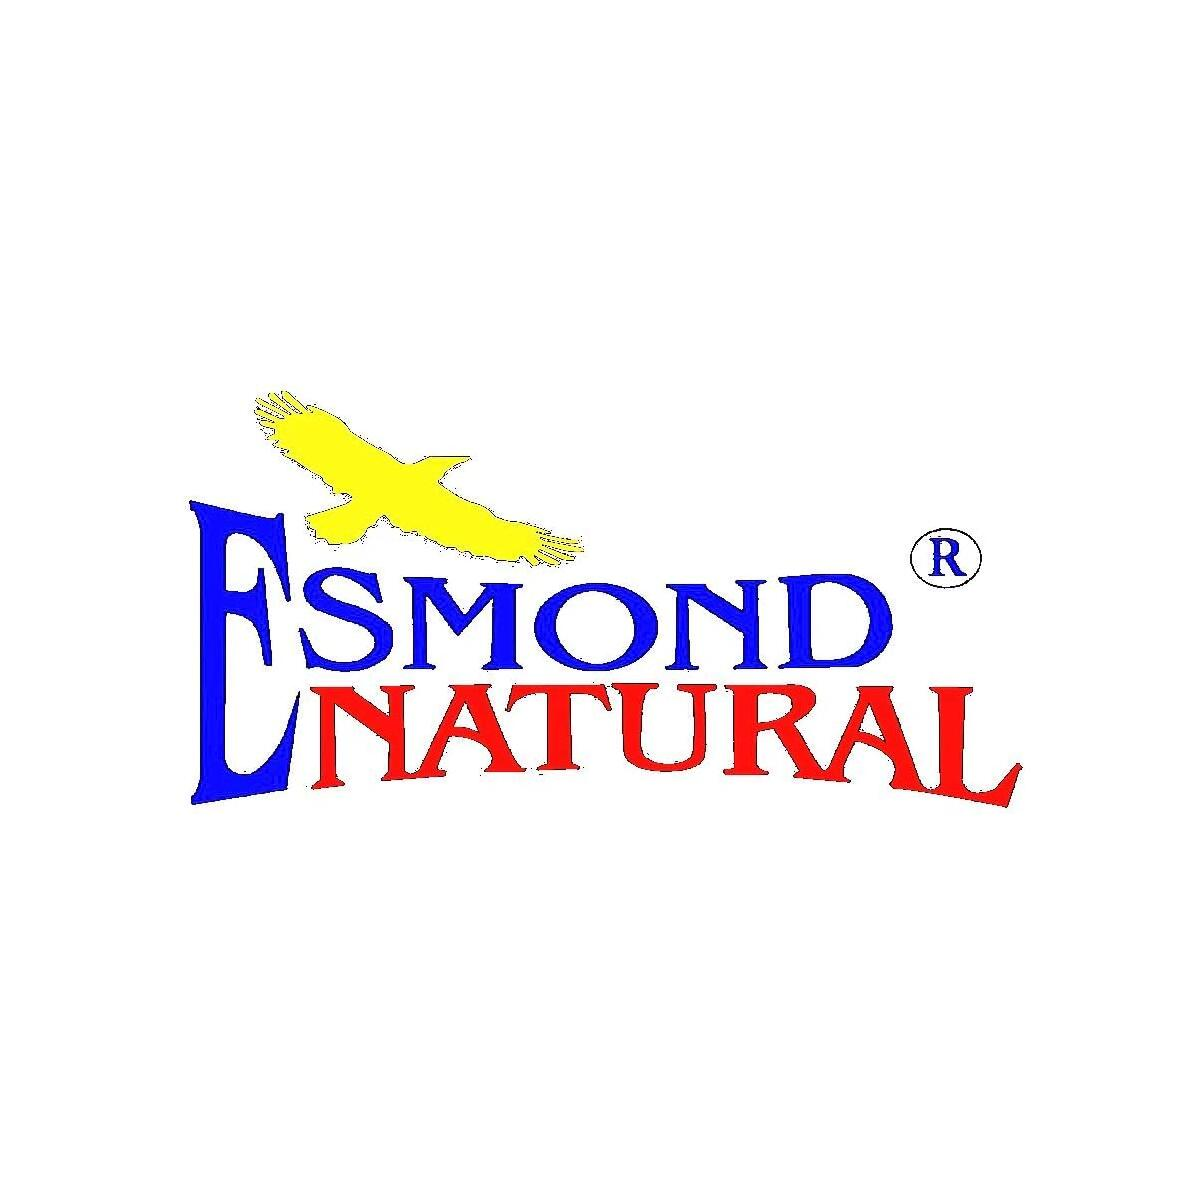 Esmond Natural: Big Friends Multi Vitamins, GMP, Natural Product Assn Certified, Made in USA-100 Tablets